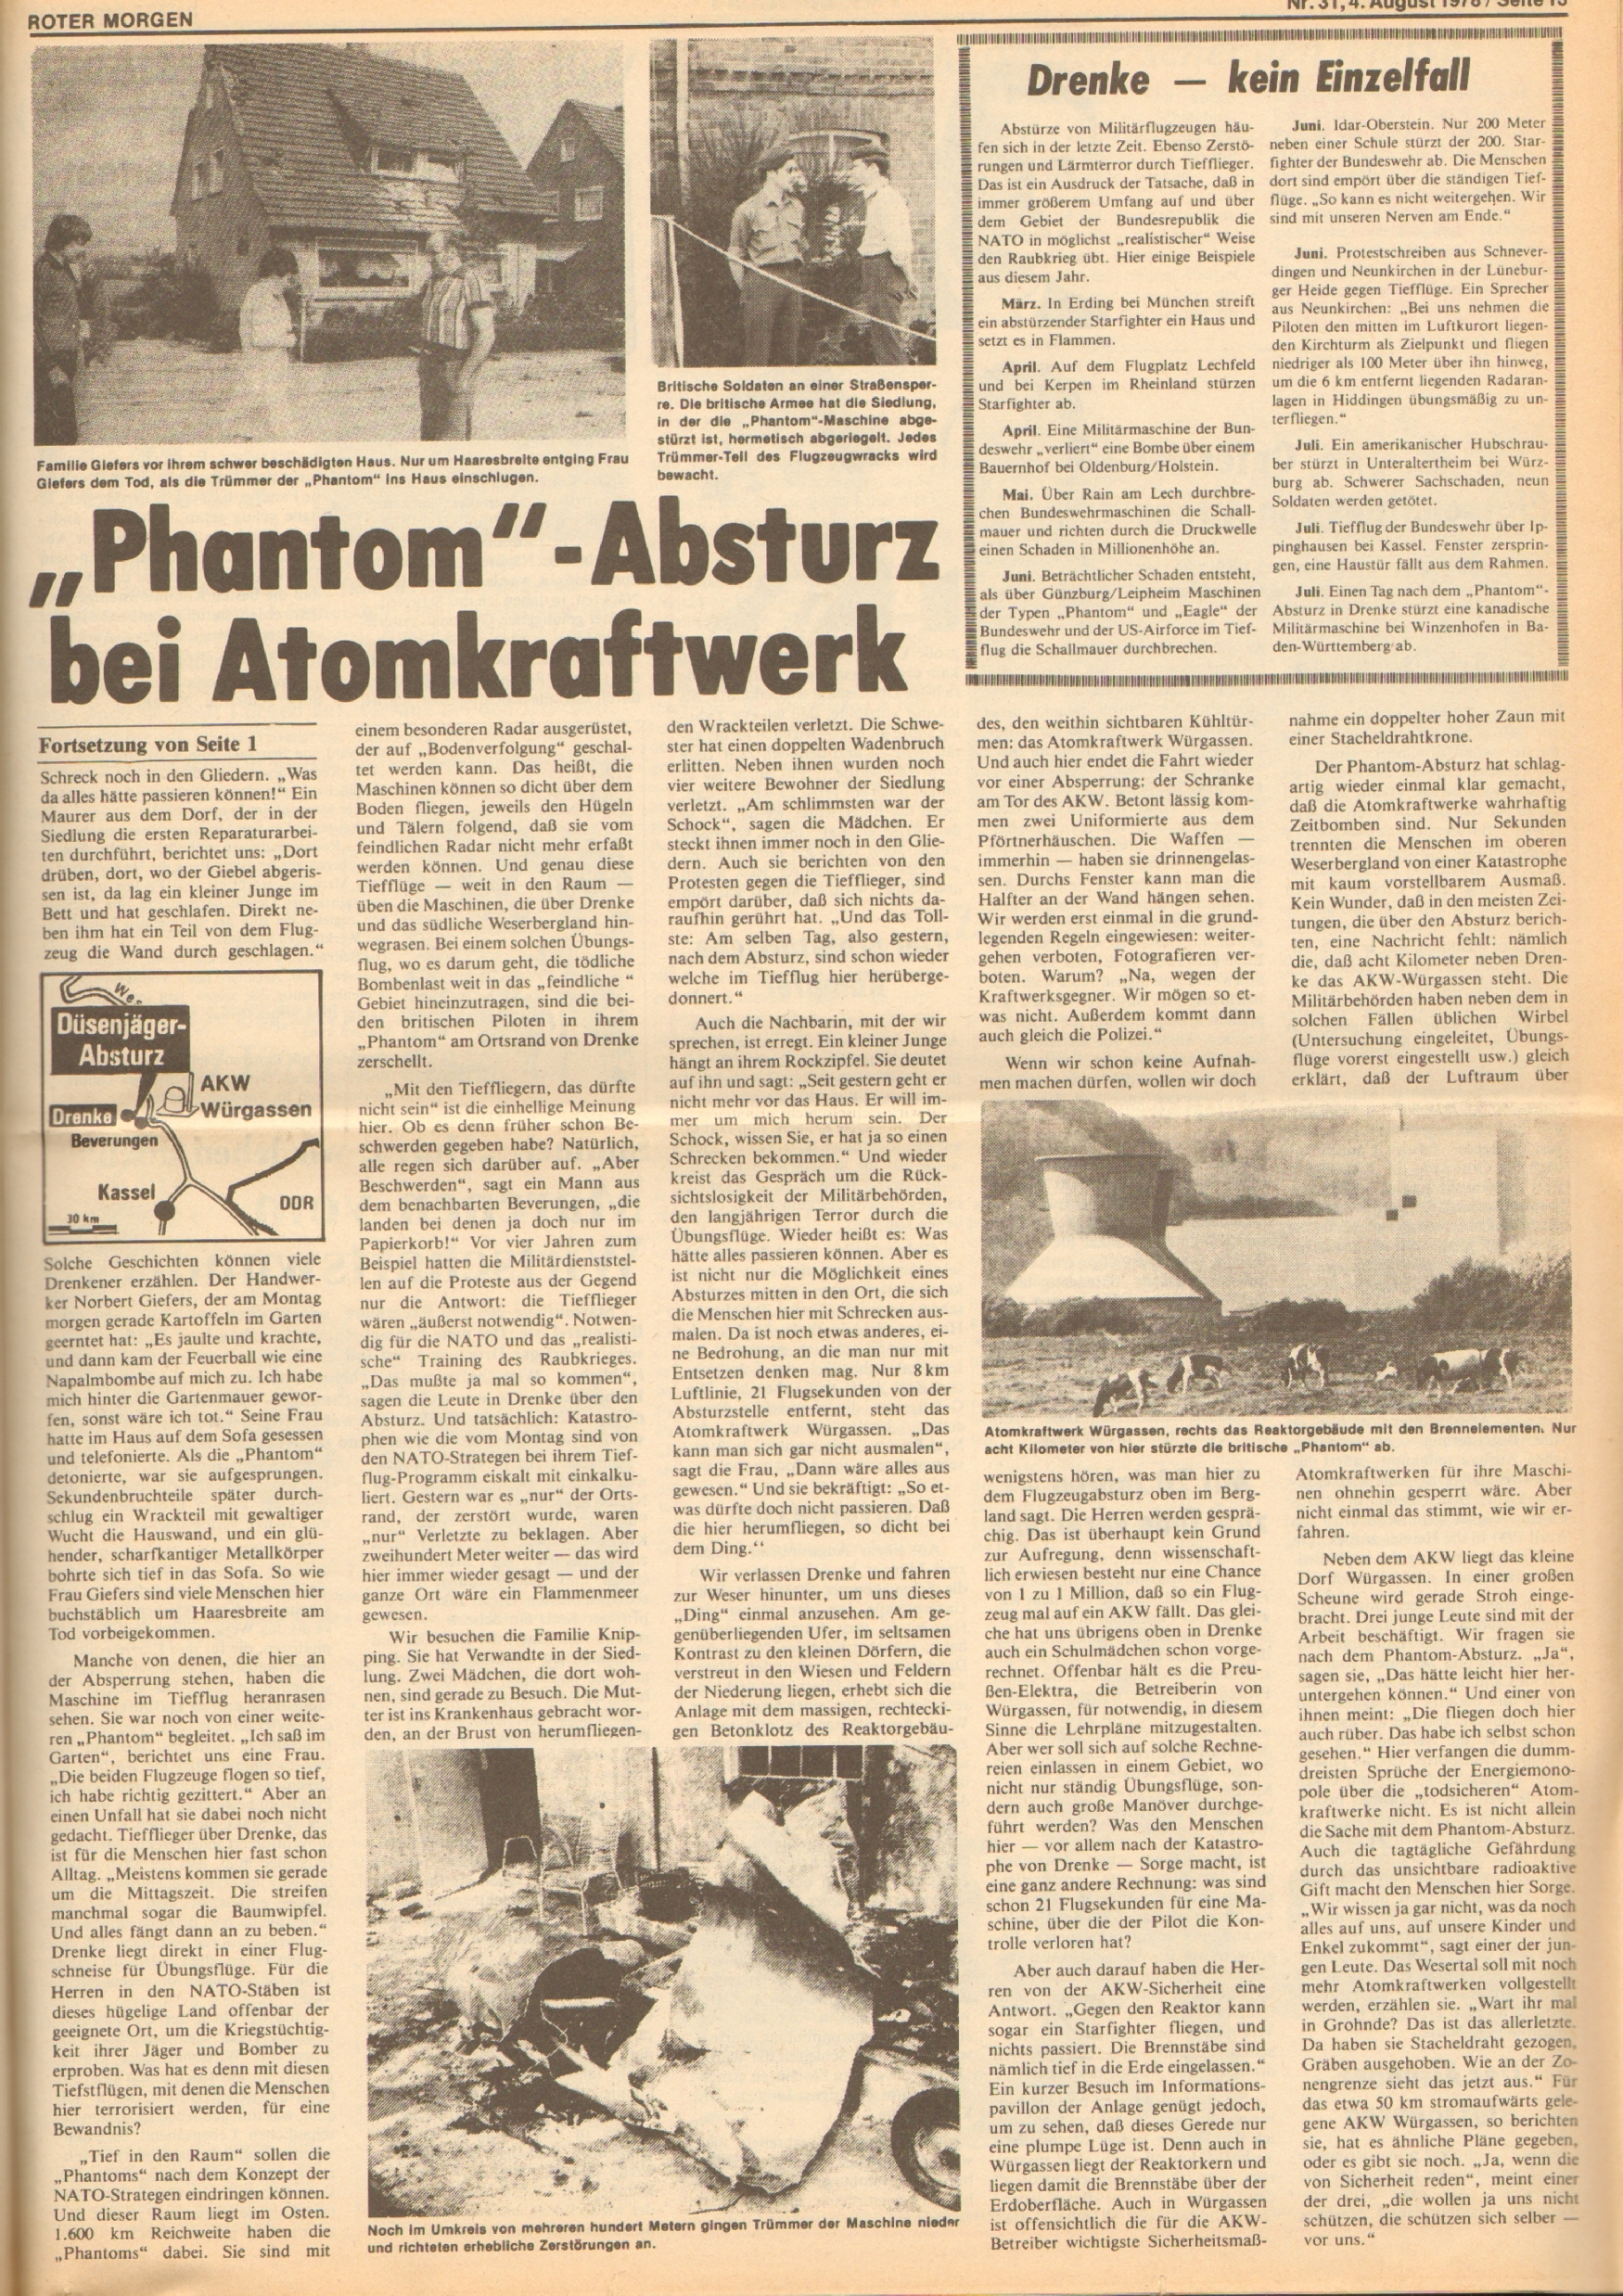 Roter Morgen, 12. Jg., 4. August 1978, Nr. 31, Seite 13